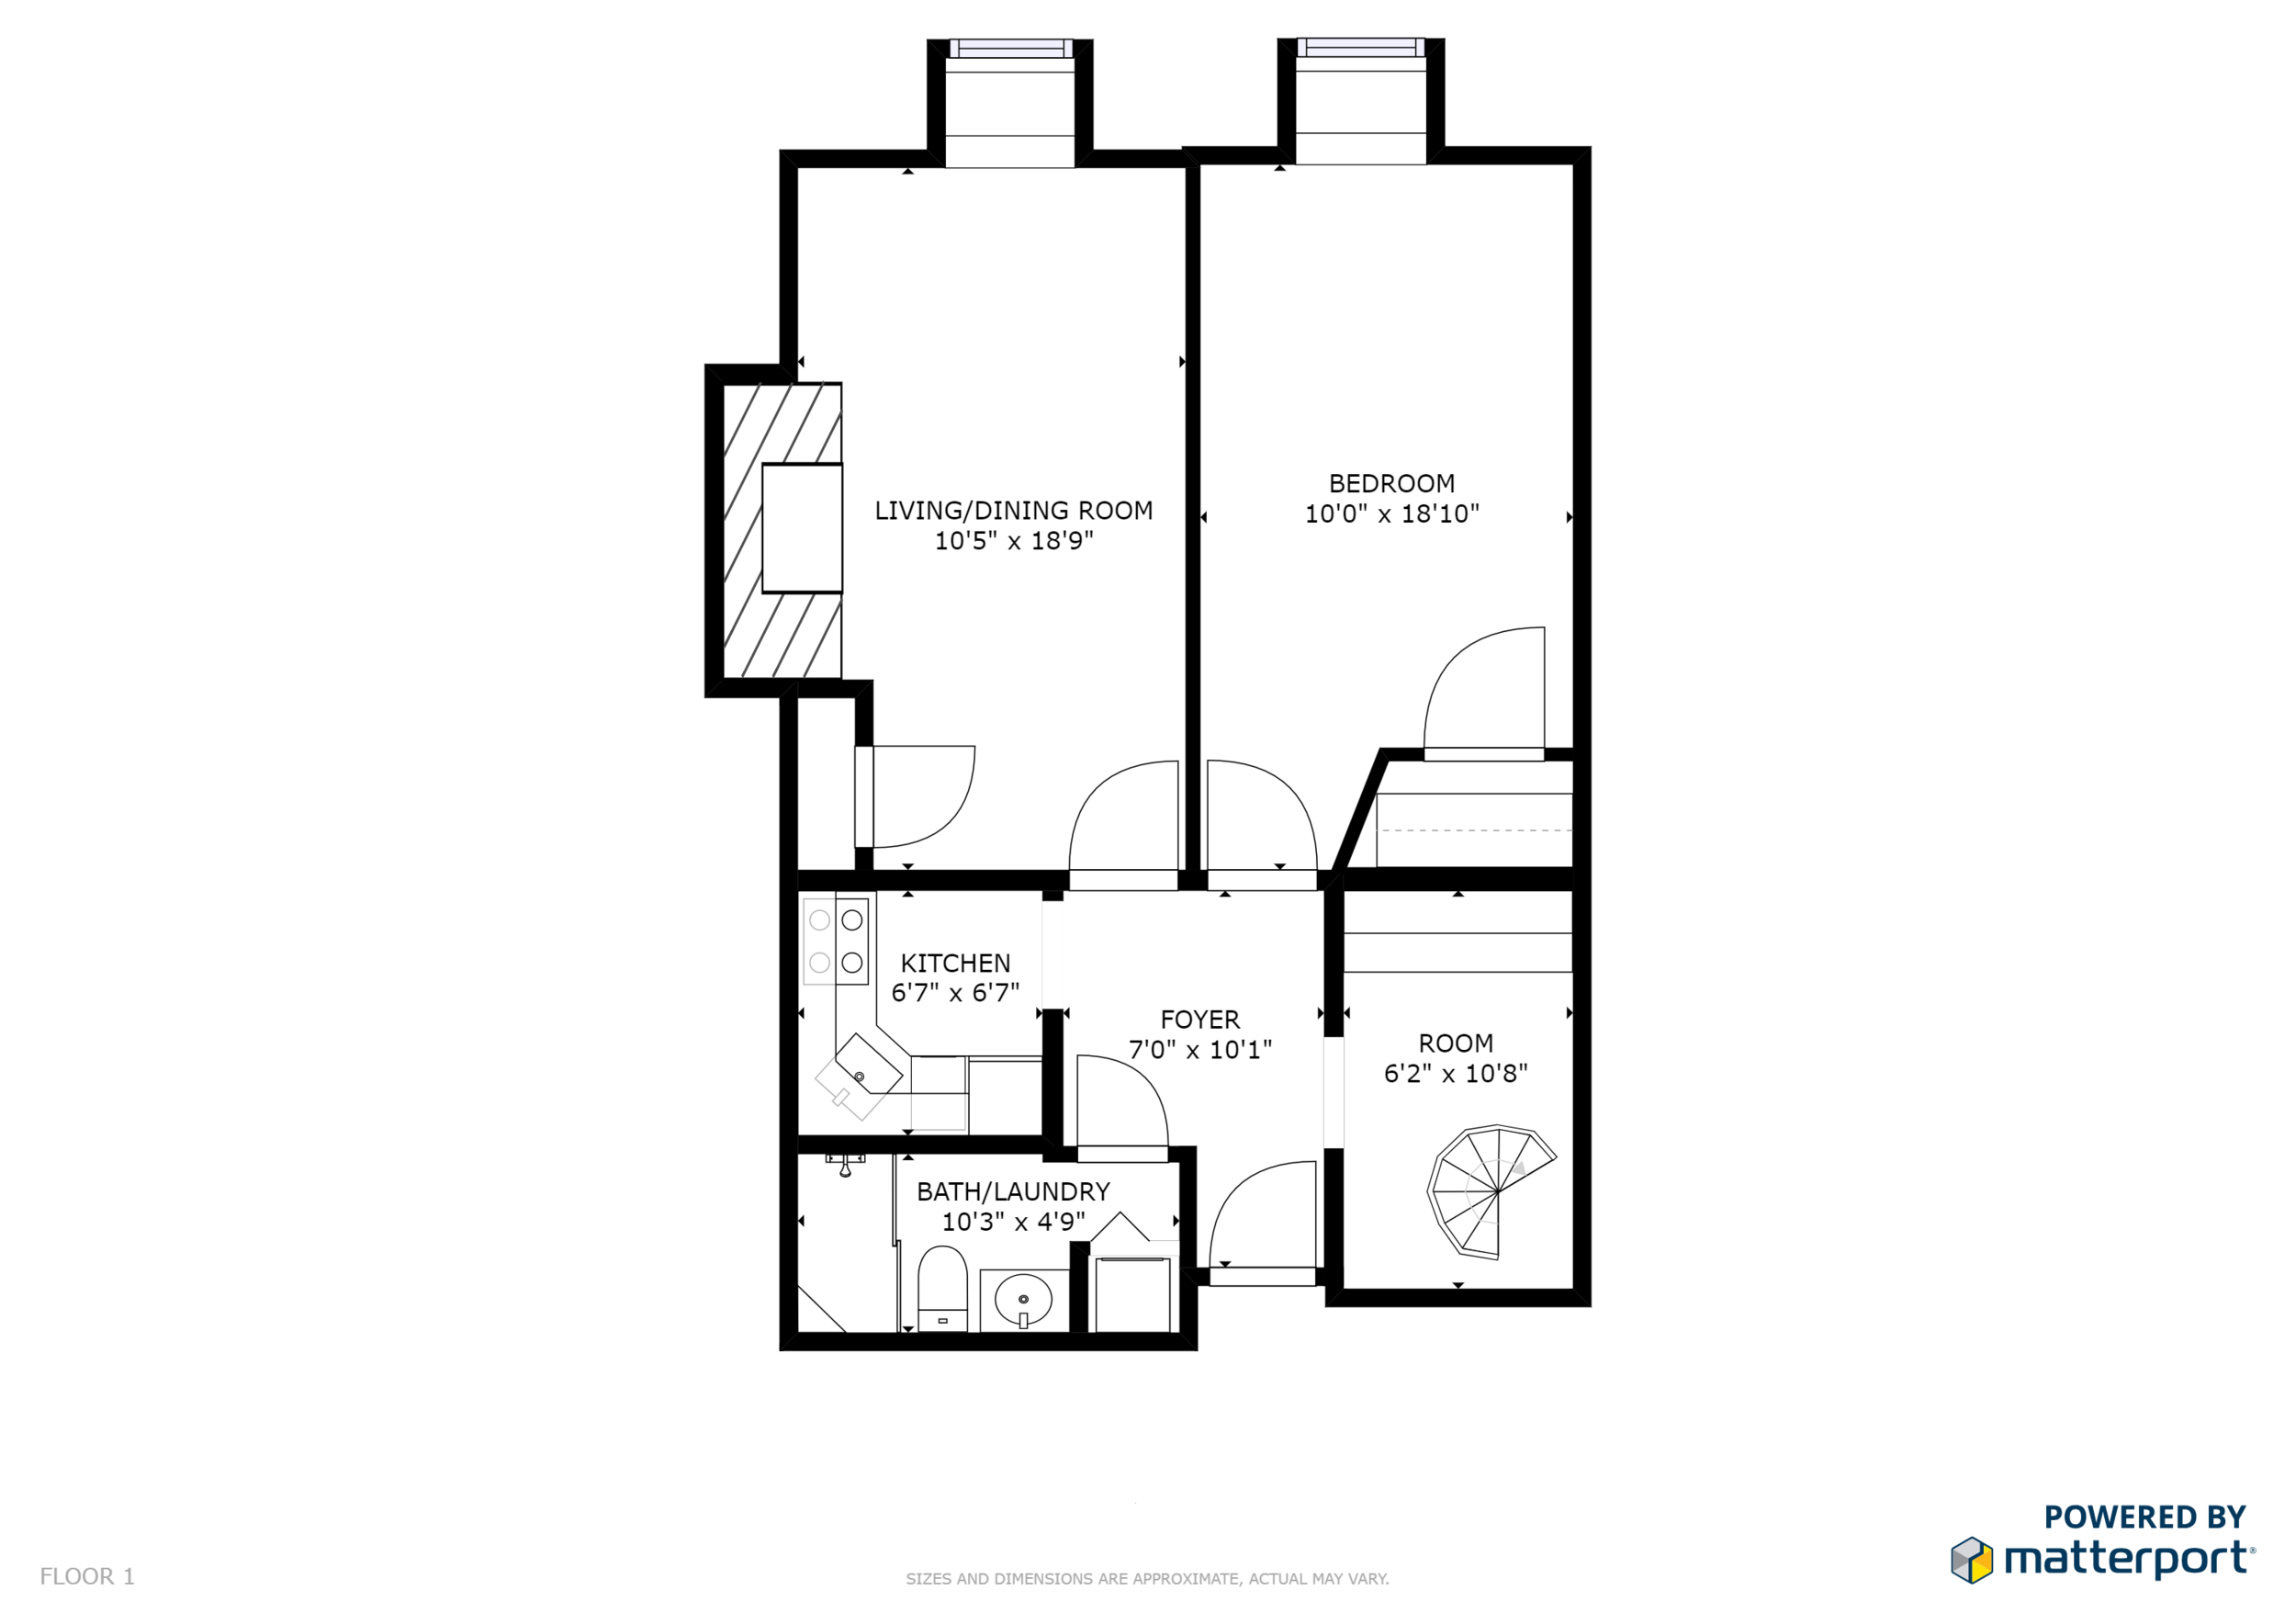 Floorplan, 127 Beacon St, #51, Boston.png